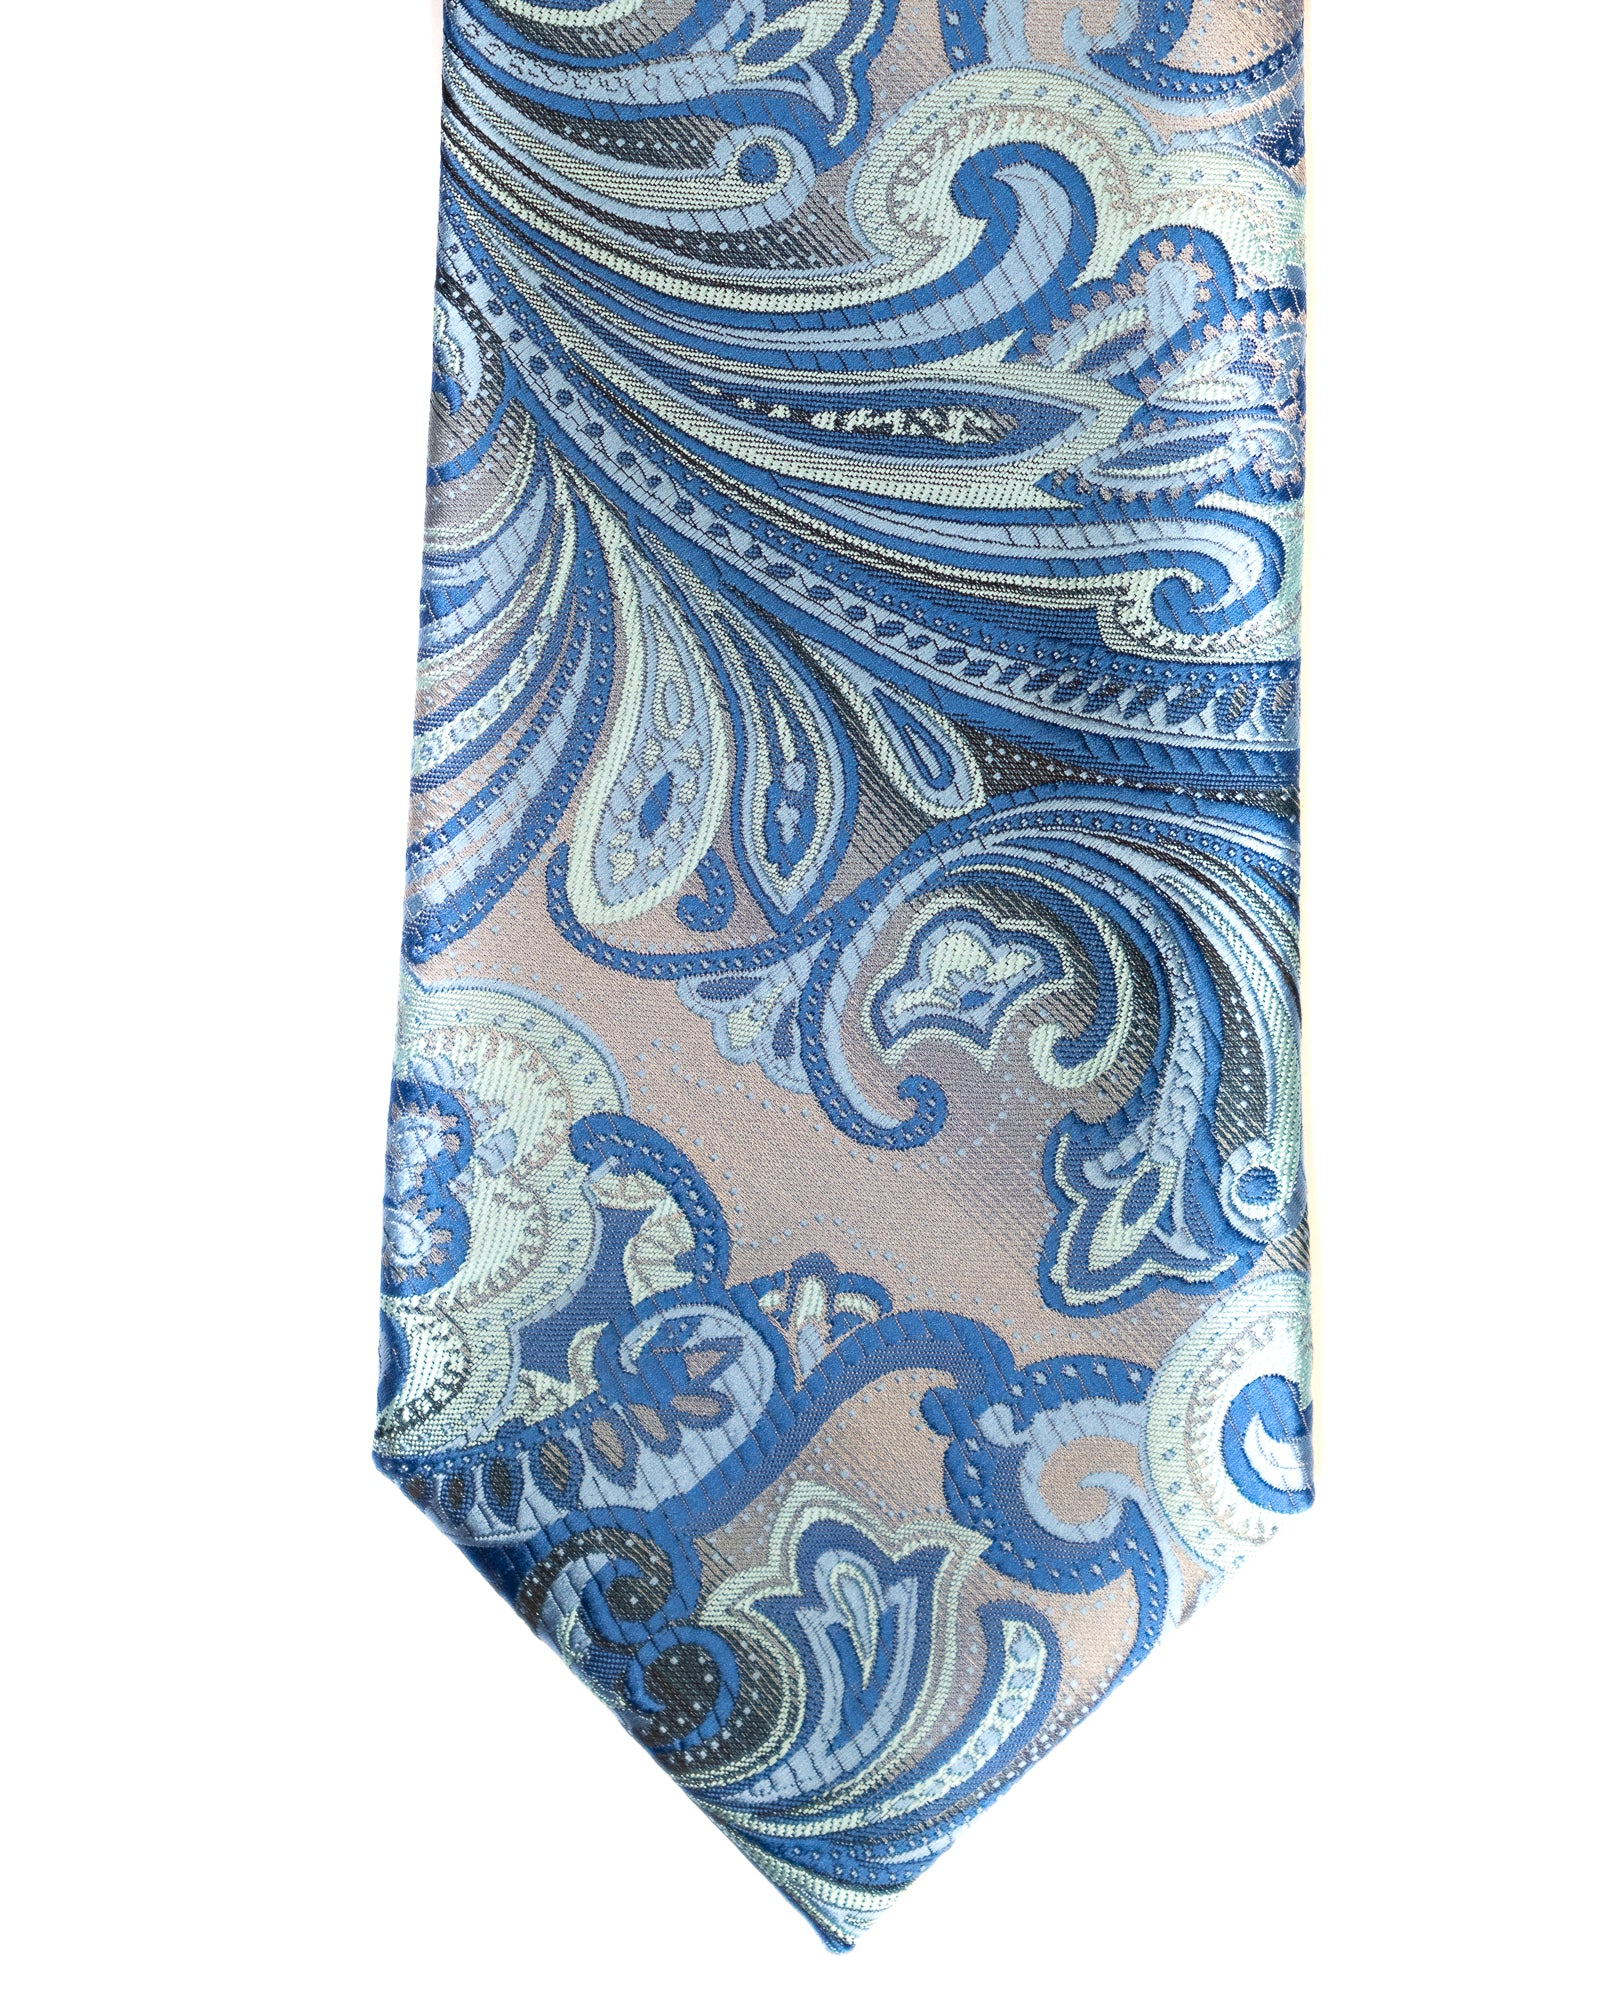 Venturi Uomo Exploded Paisley Tie in Grey with French Blue - Rainwater's Men's Clothing and Tuxedo Rental